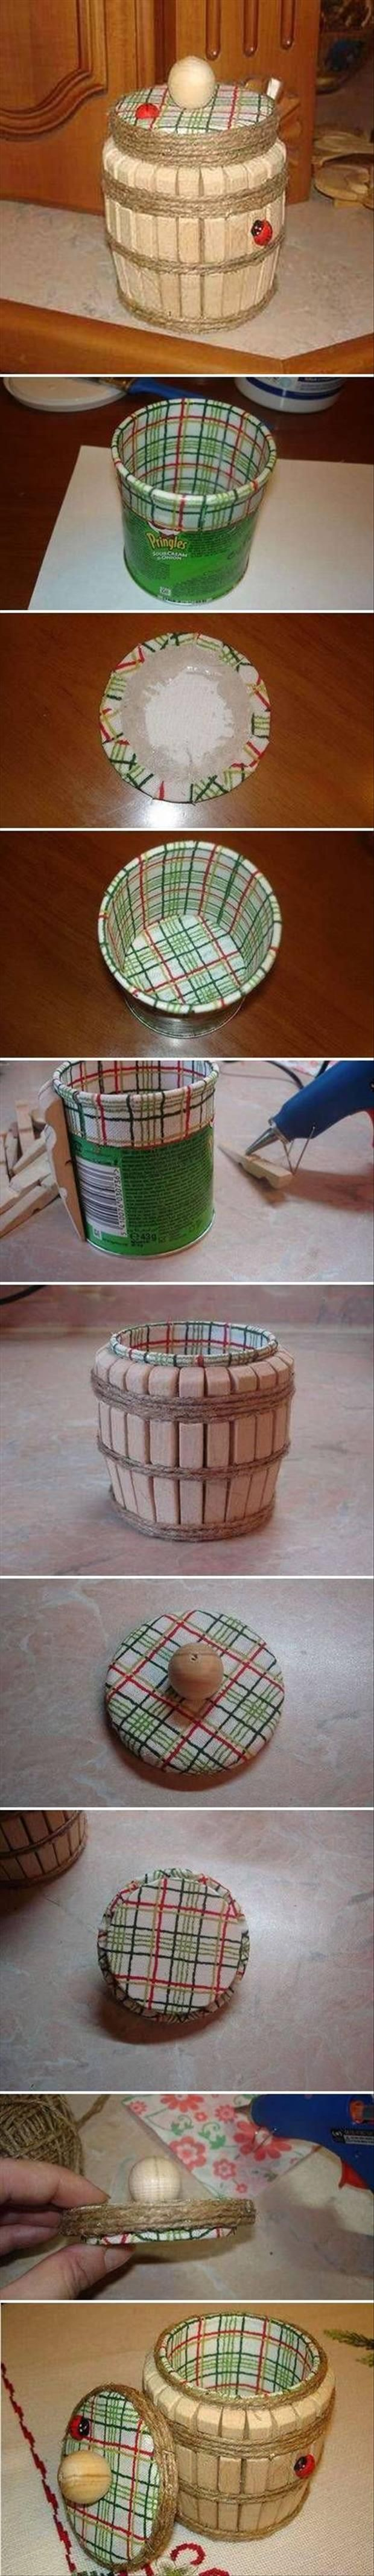 Simple Ideas That Are Borderline Crafty – 50 Pics